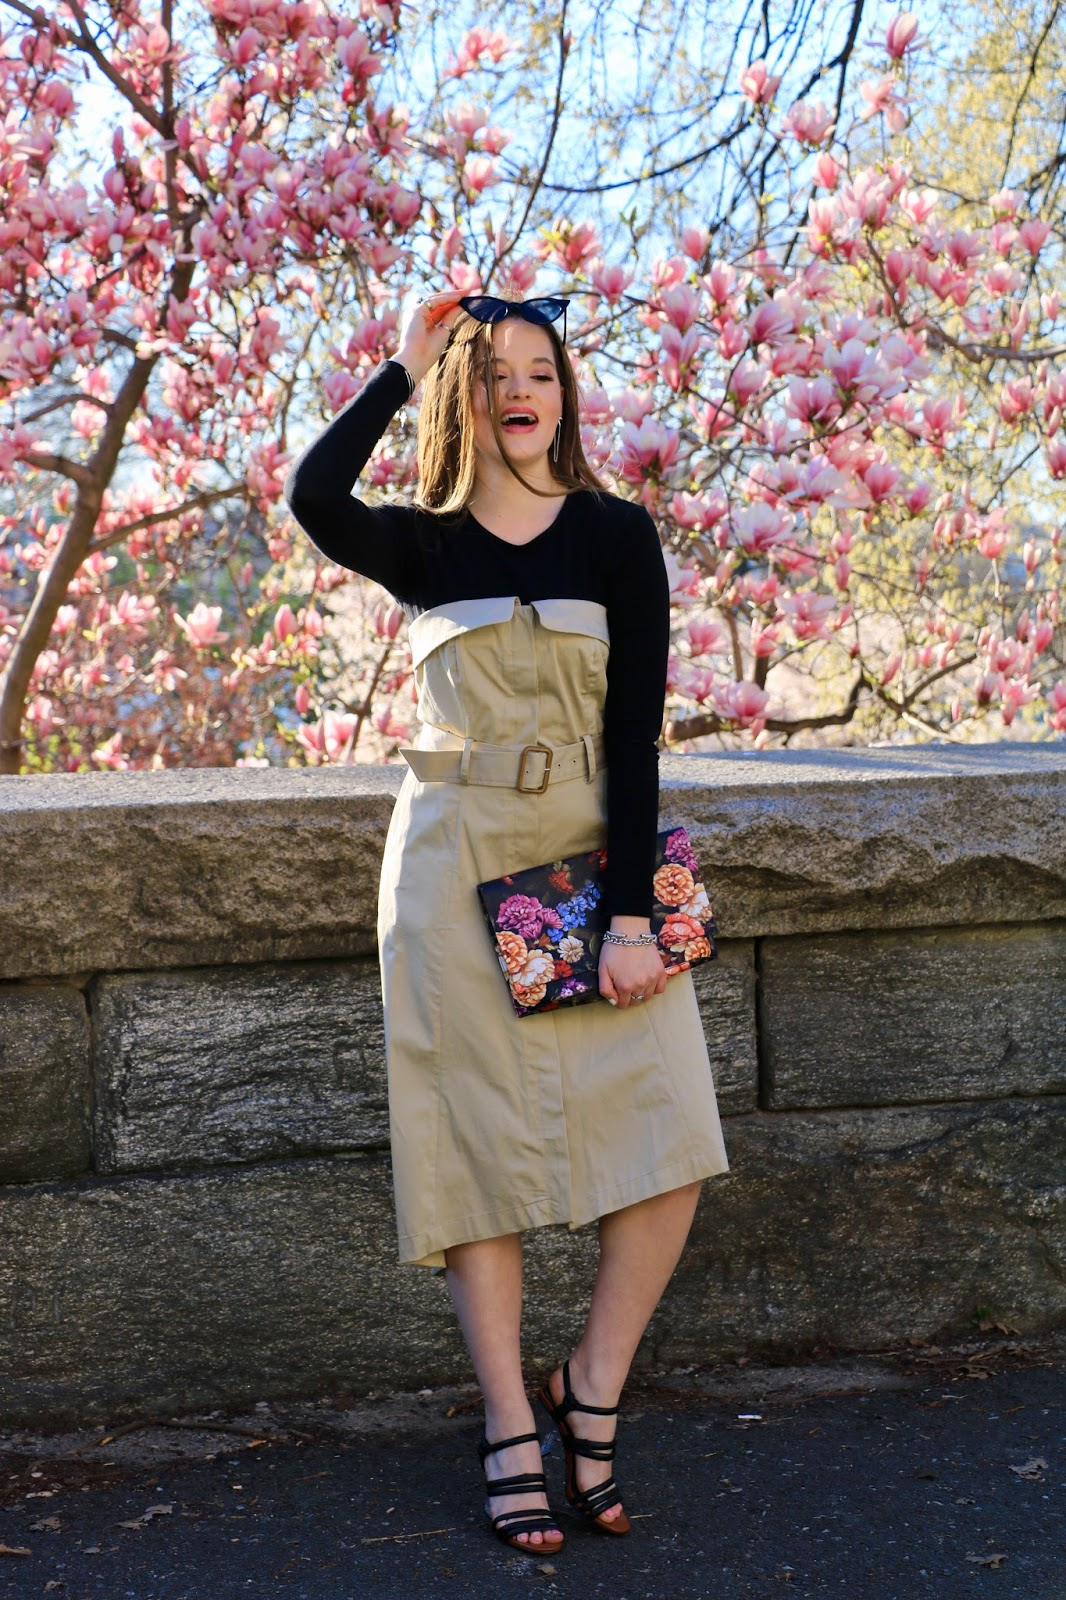 Nyc fashion blogger Kathleen Harper showing how to wear a trench dress